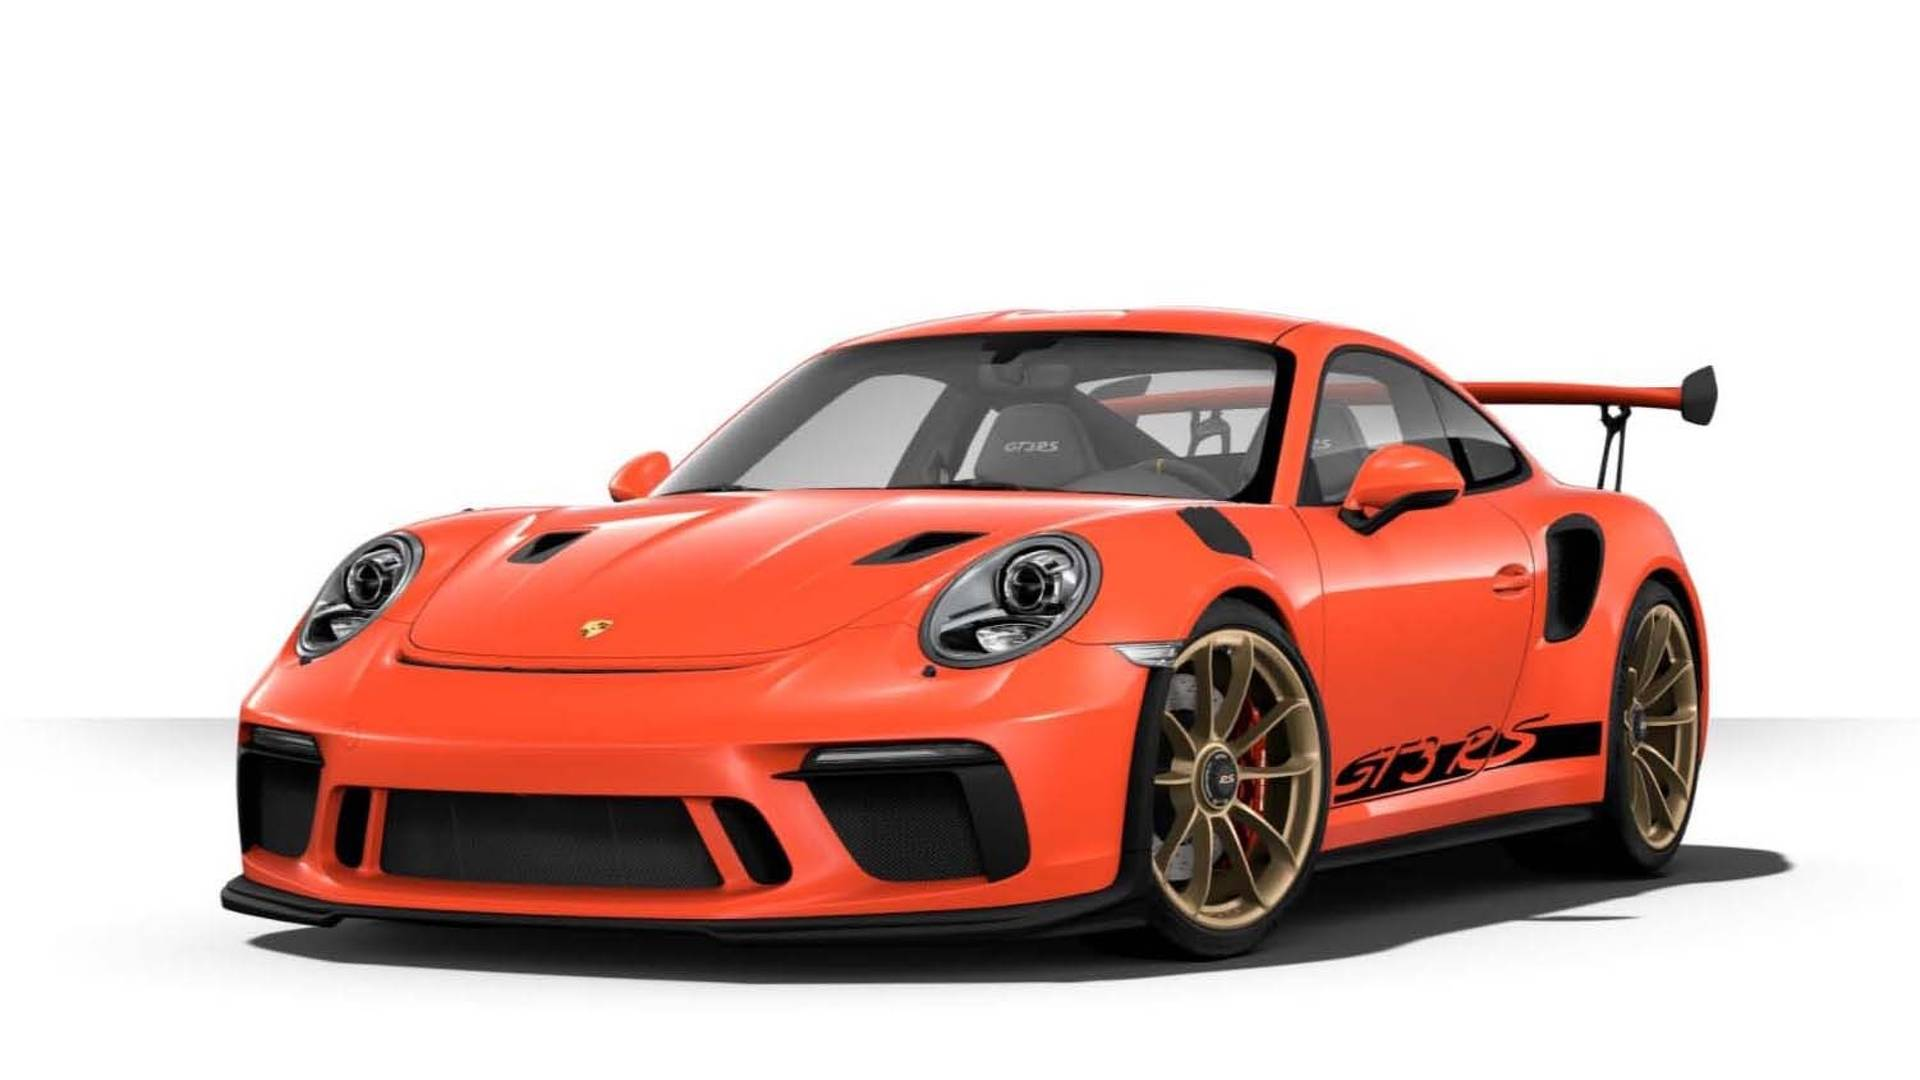 The Most Expensive Porsche 911 GT3 RS Costs $253,240